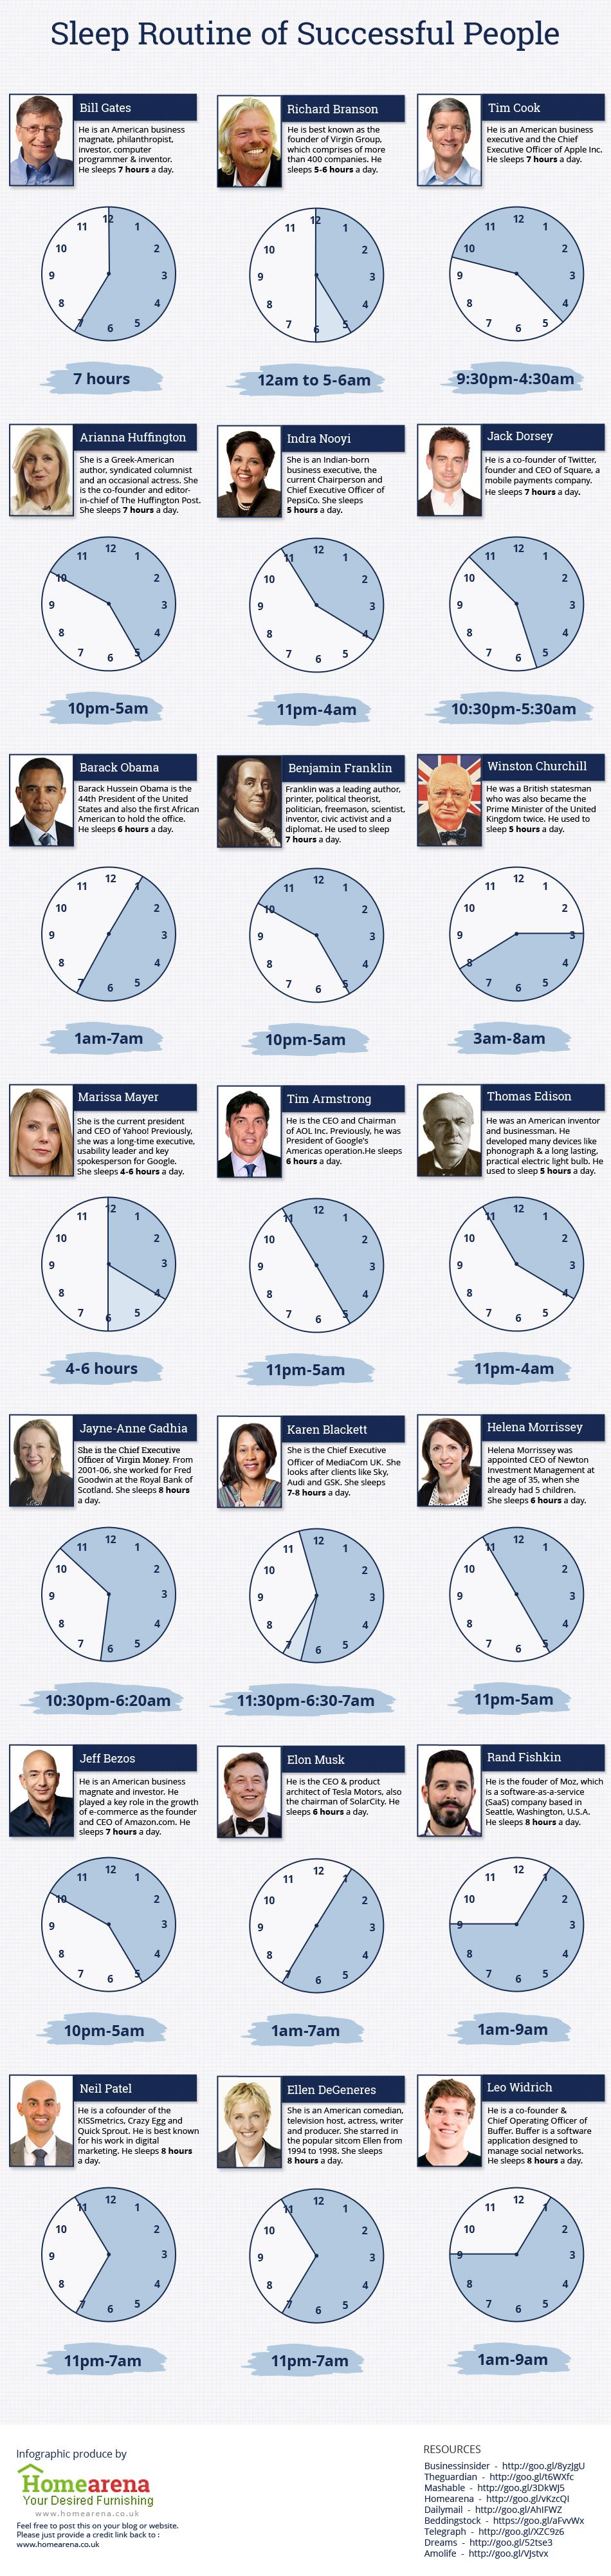 Sleep-patterns-of-21-highly-successful-people1